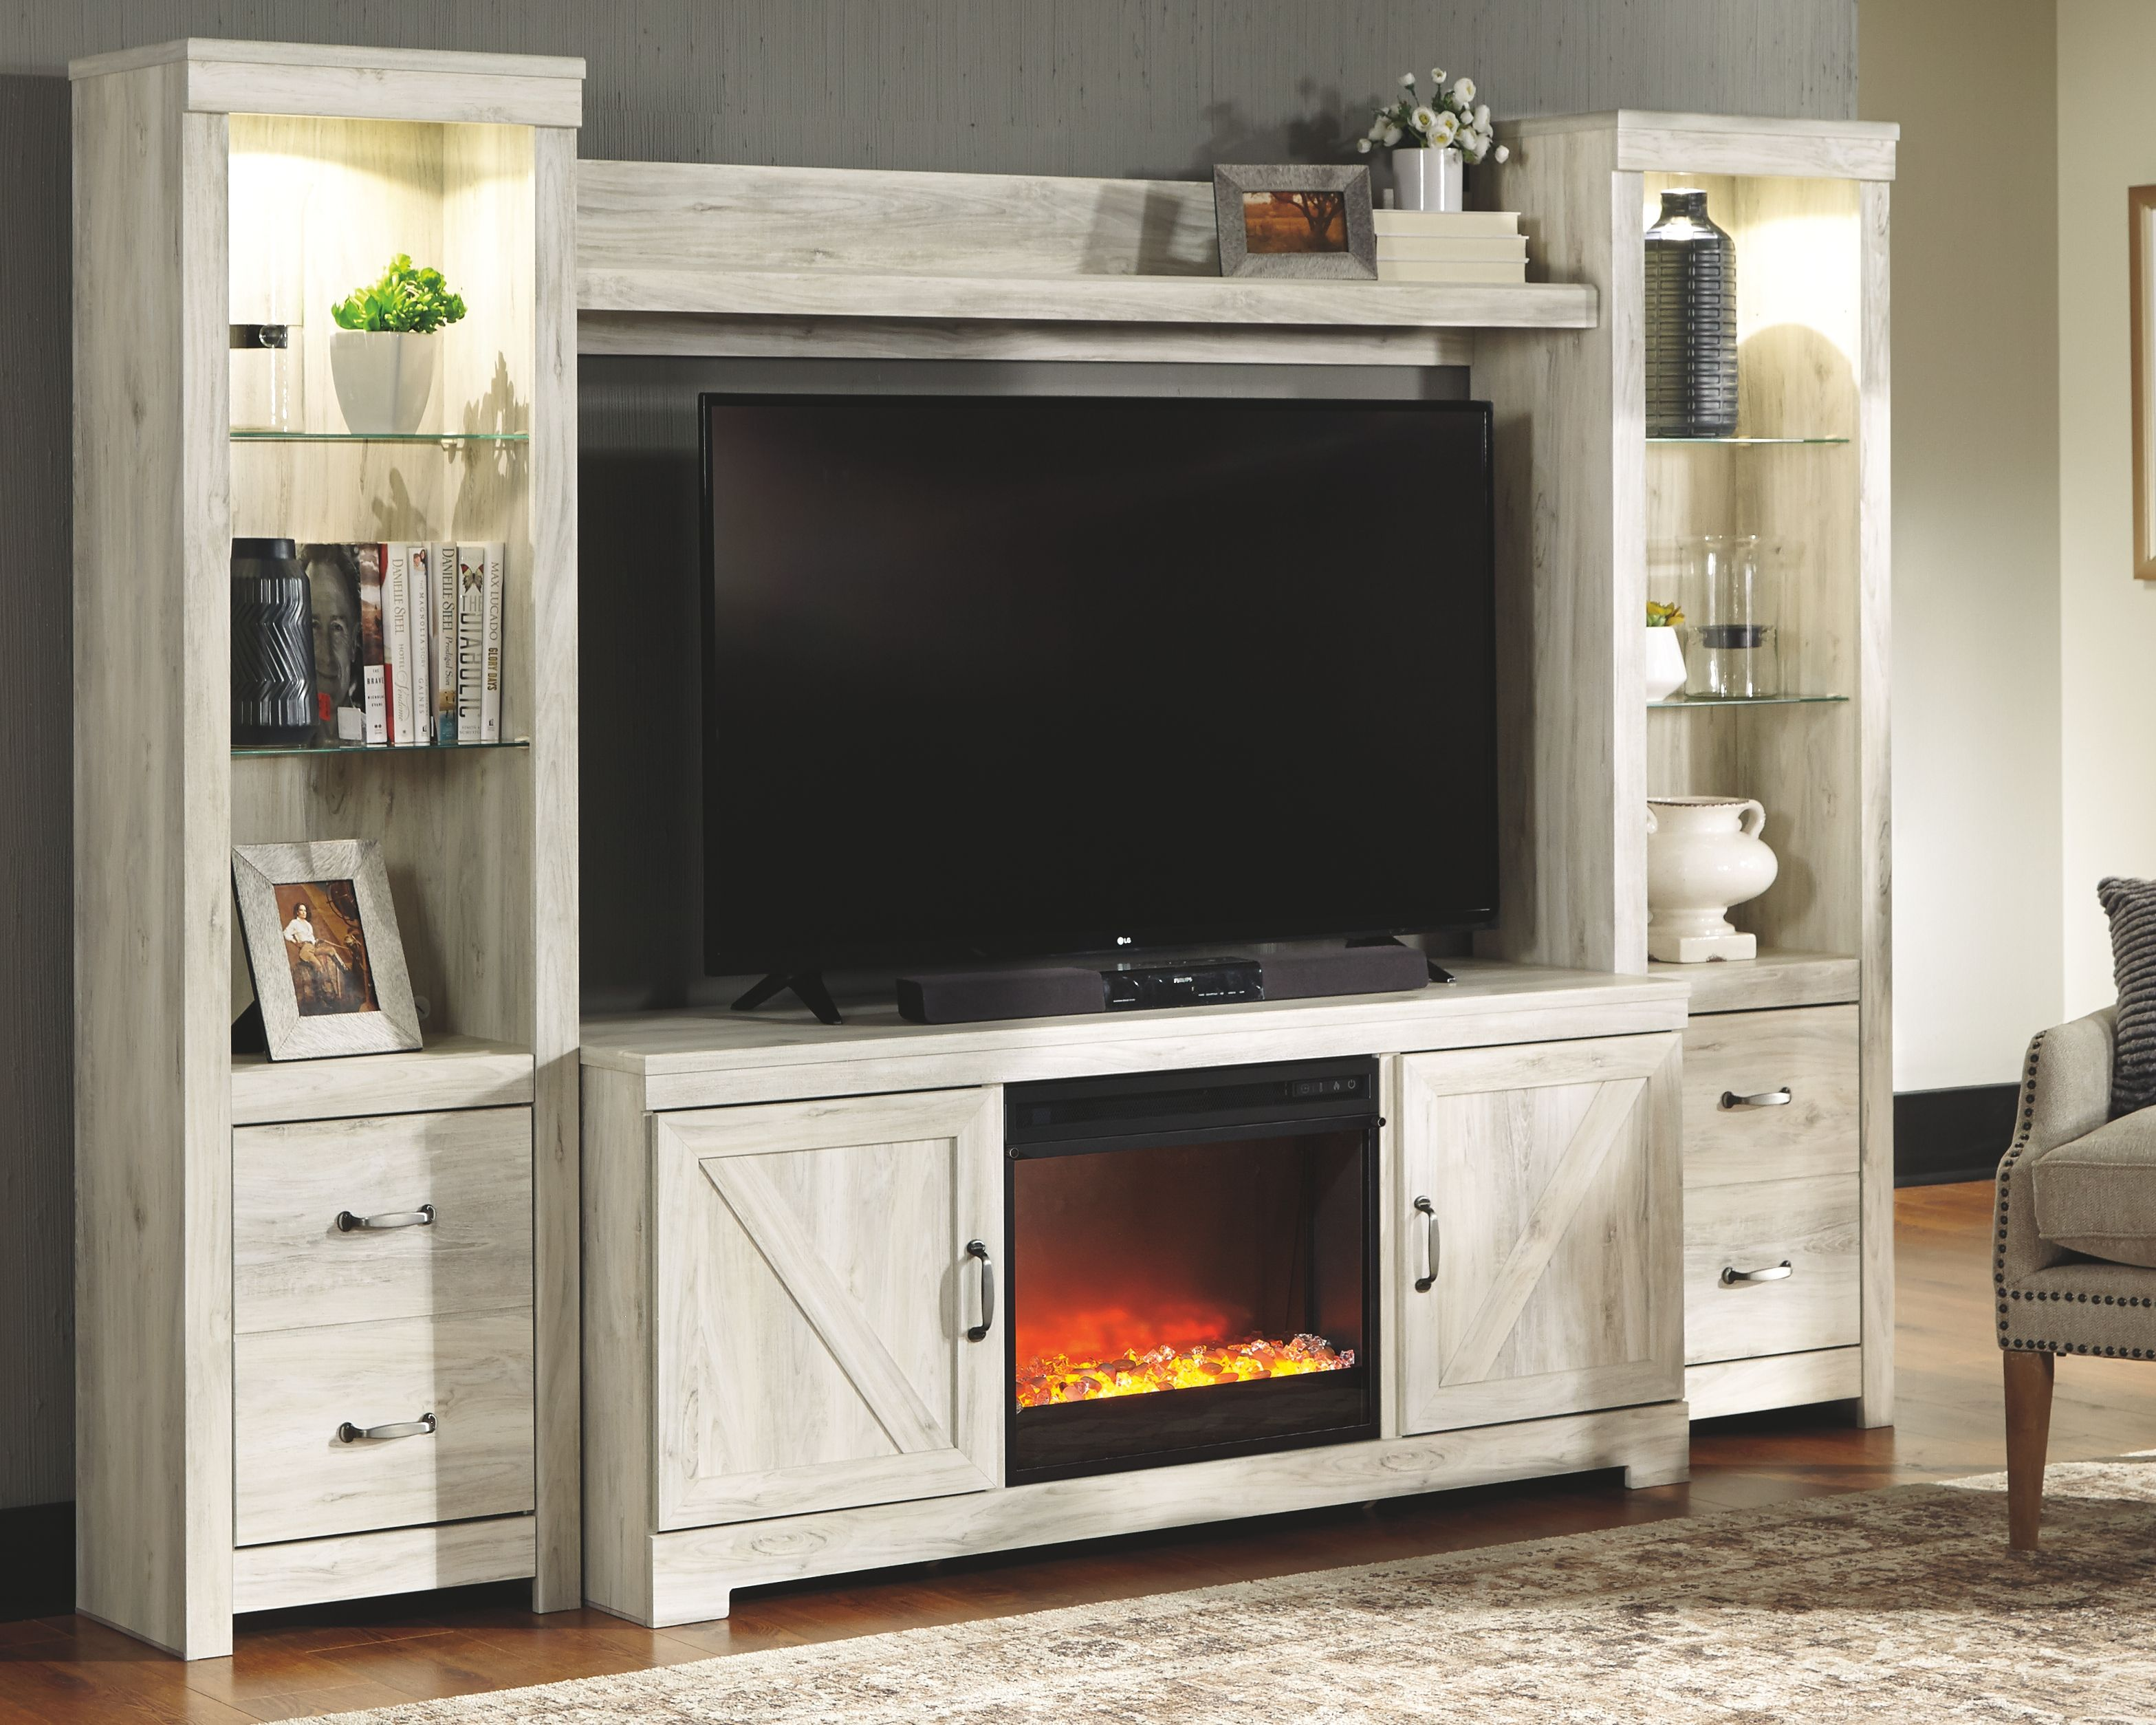 Bellaby 4 Piece Entertainment Center With Fireplace Ashley Furniture Homestore Living Room Entertainment Center Fireplace Entertainment Center Living Room Entertainment